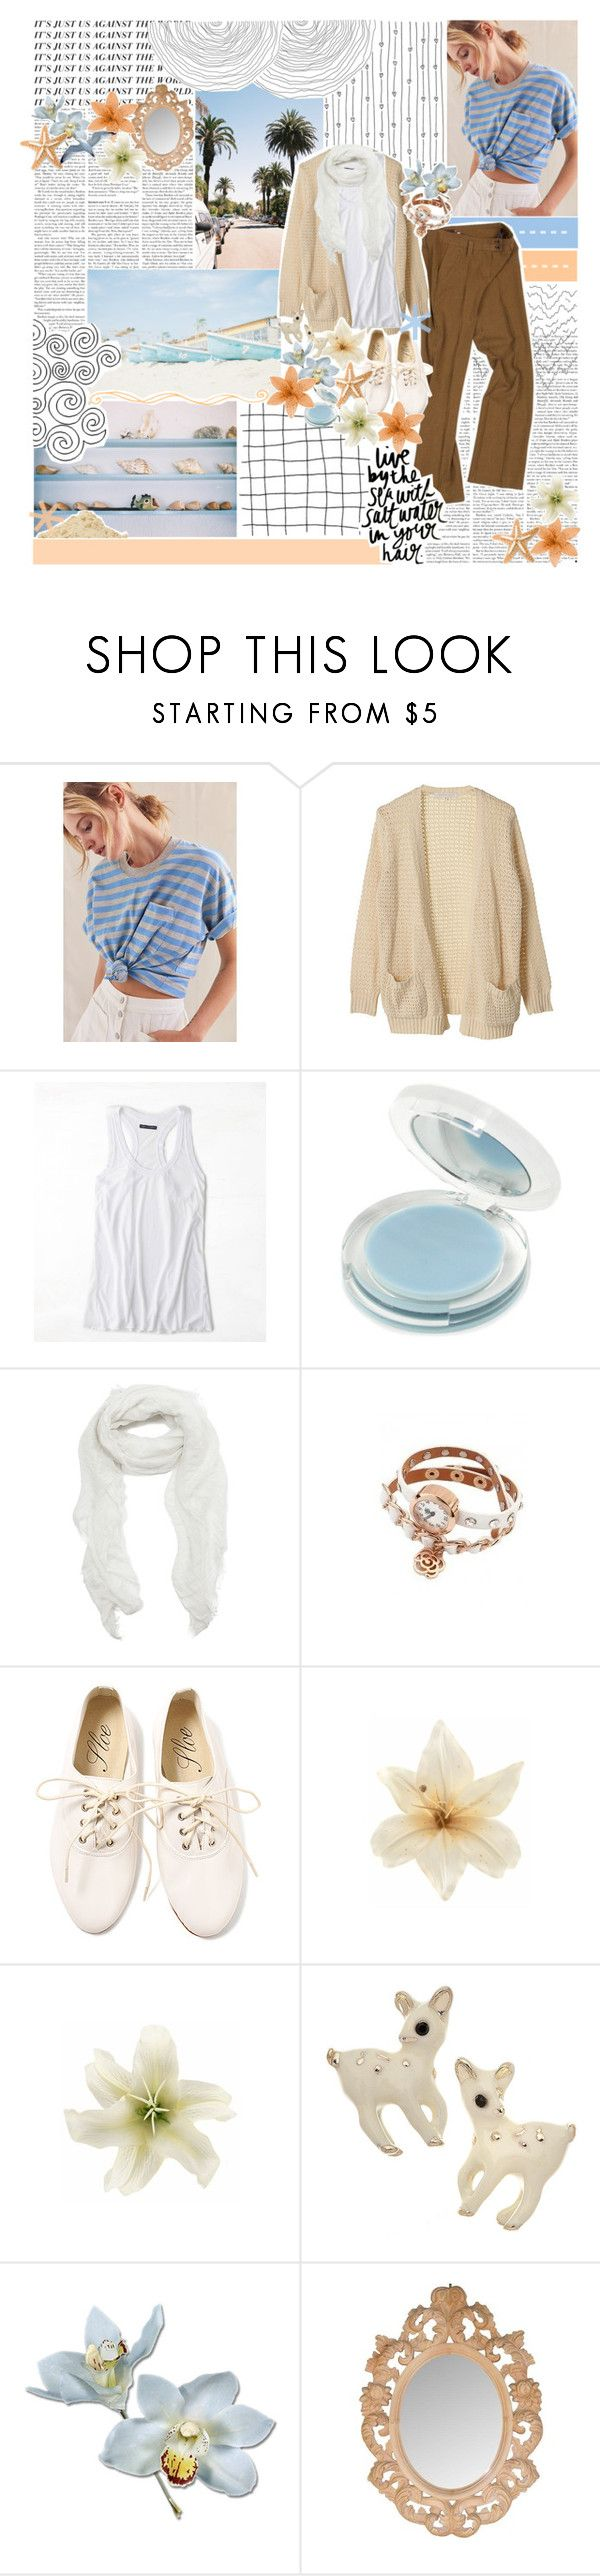 """""""//sweet little unforgettable thing♥"""" by tropical-songwriter ❤ liked on Polyvore featuring Urban Renewal, American Eagle Outfitters, GoSMILE, Subtle Luxury, Salt Water Sandals, Clips and BOBBY"""